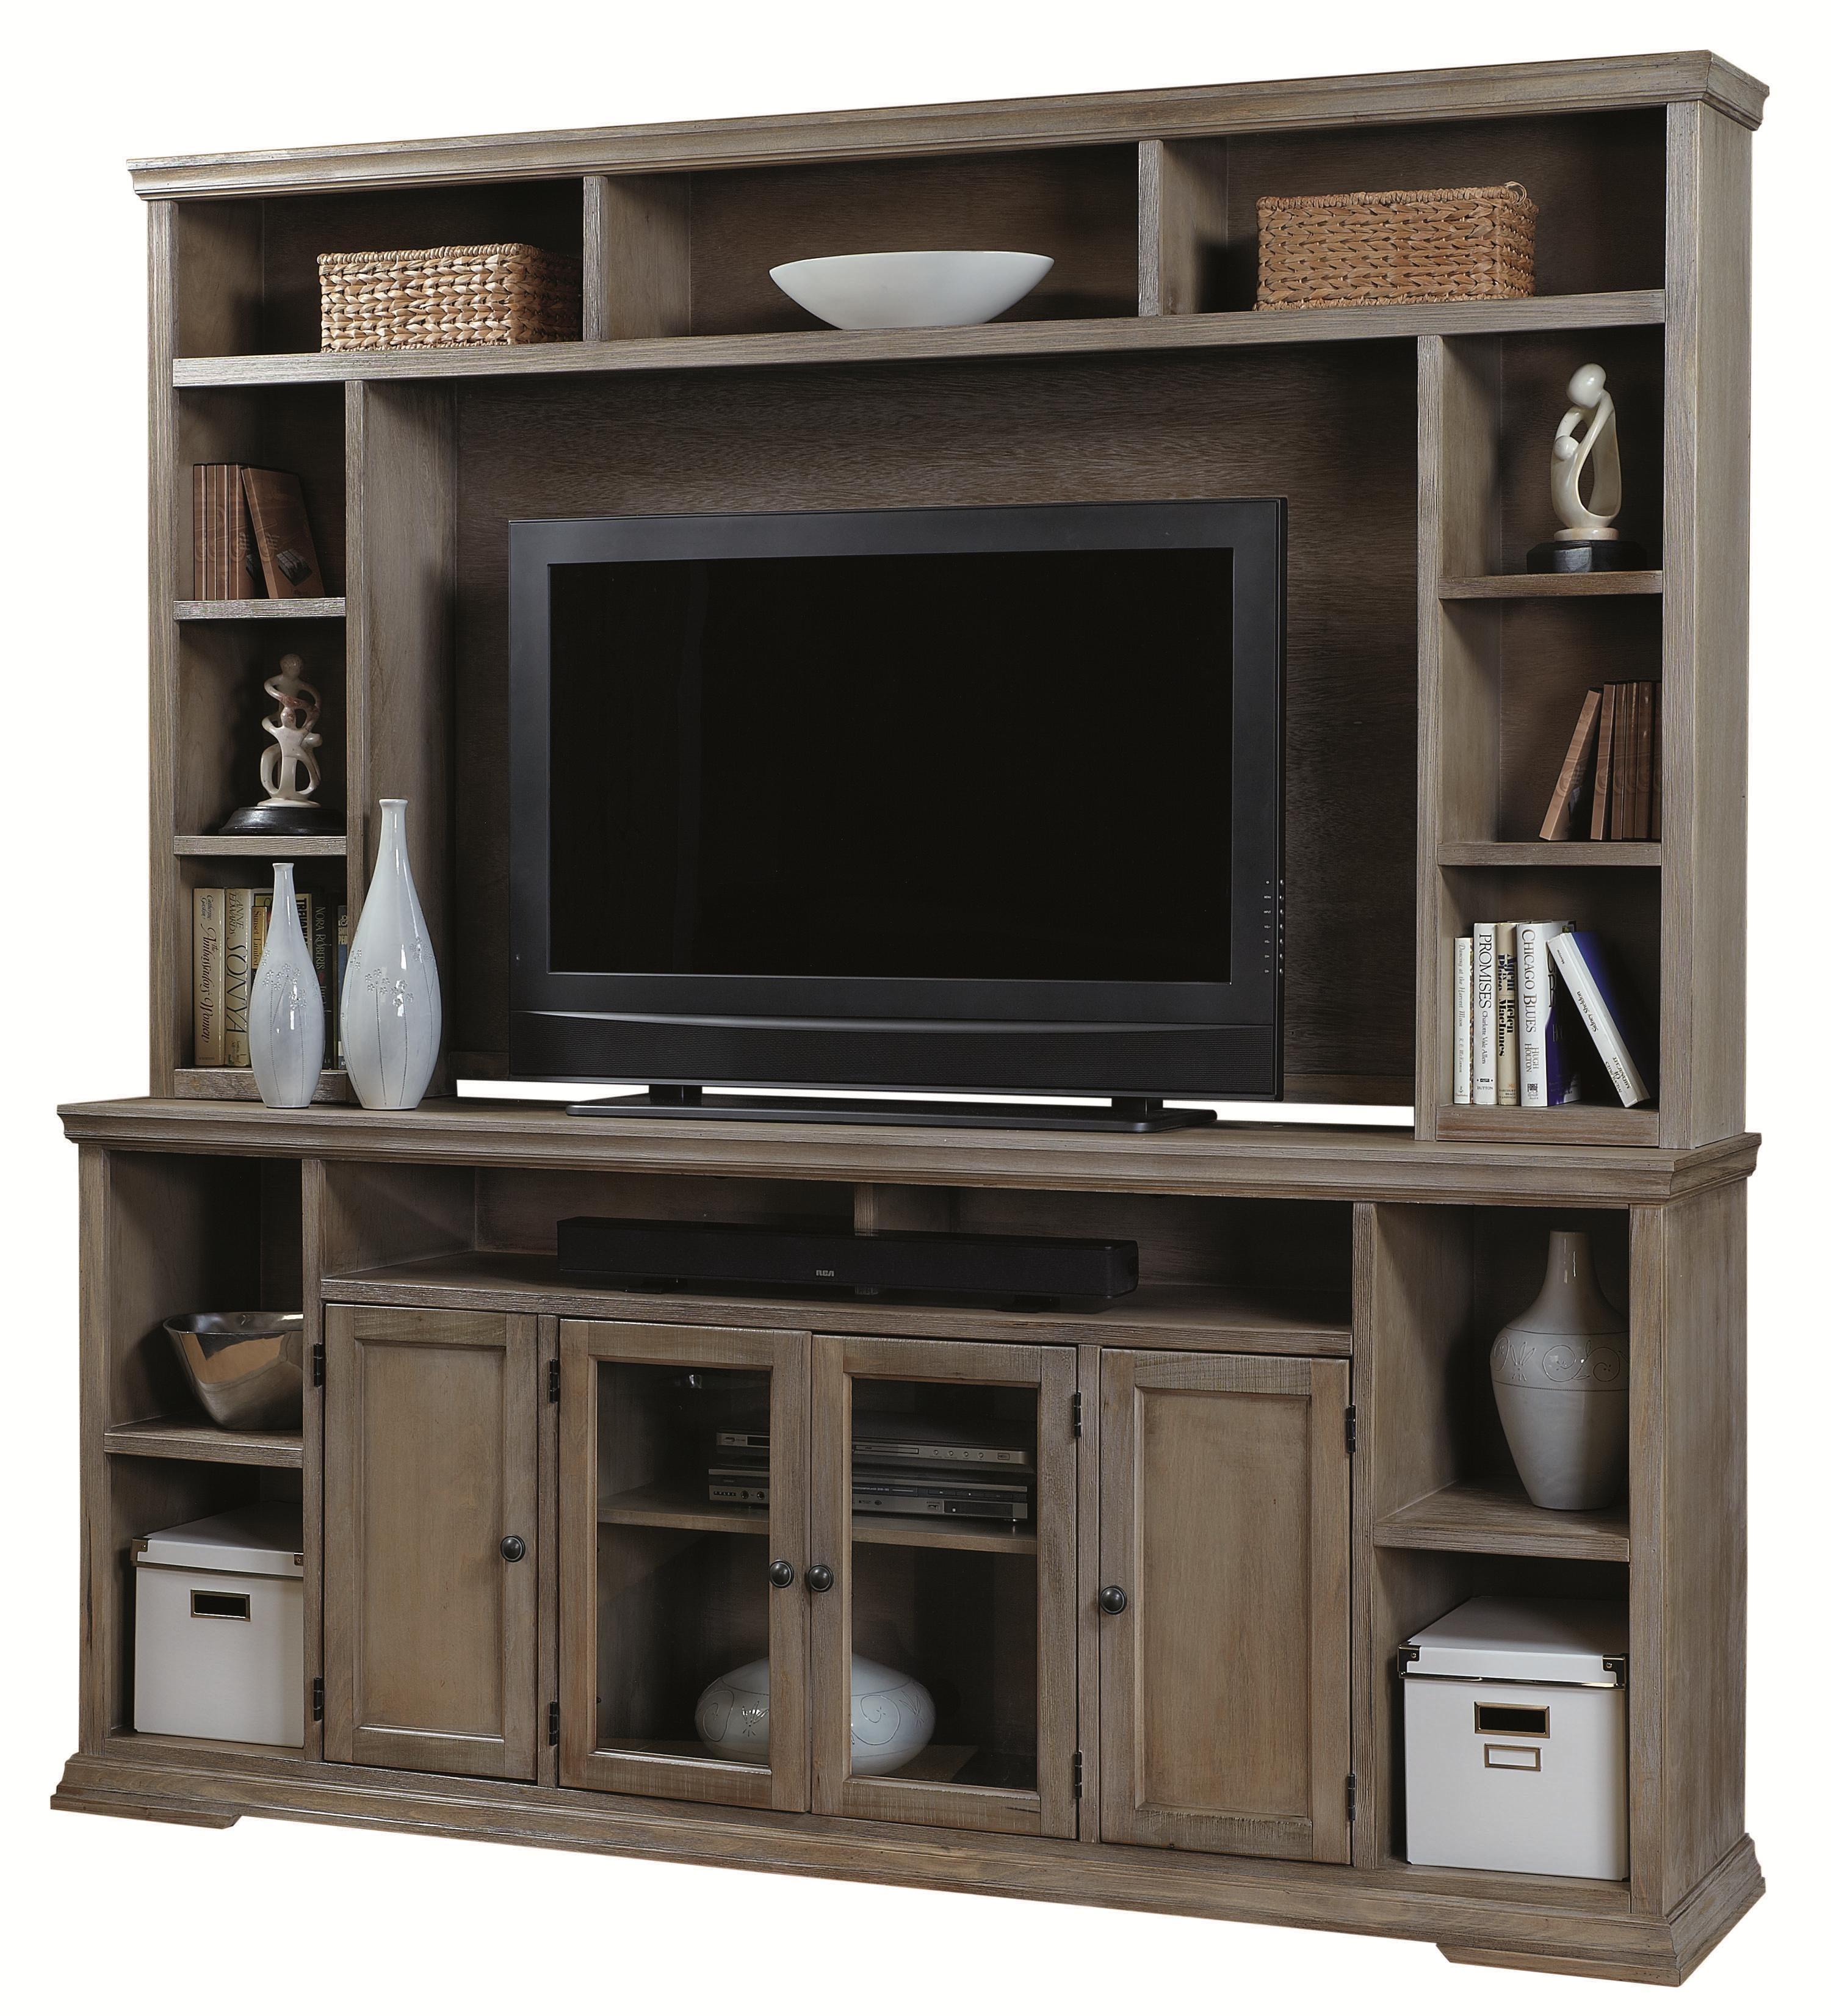 """Morris Home Furnishings Calabasas Calabasas 84"""" Television Console with Hutch - Item Number: 256846579"""